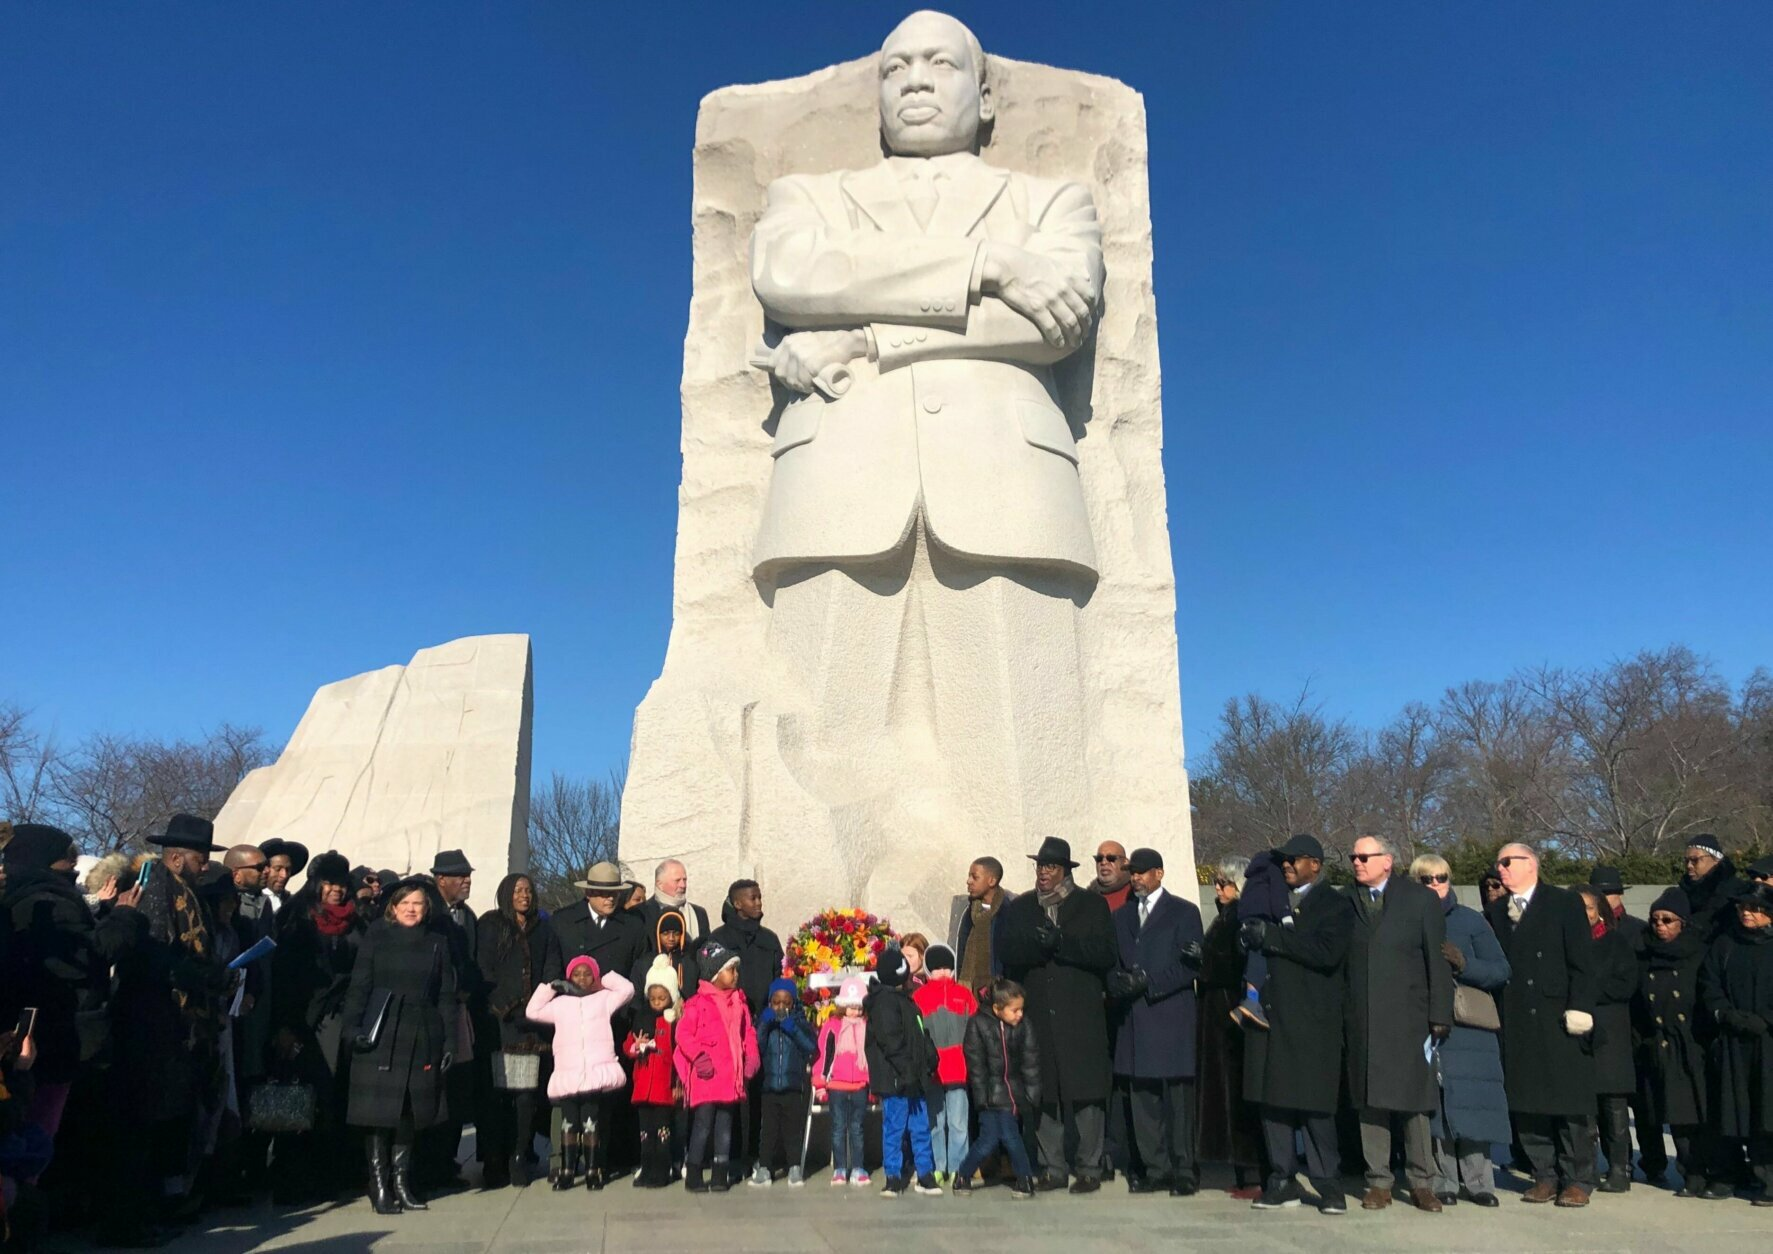 Martin Luther King Jr S Legacy Honored With Wreath Laying Ceremony At Dc Memorial Wtop